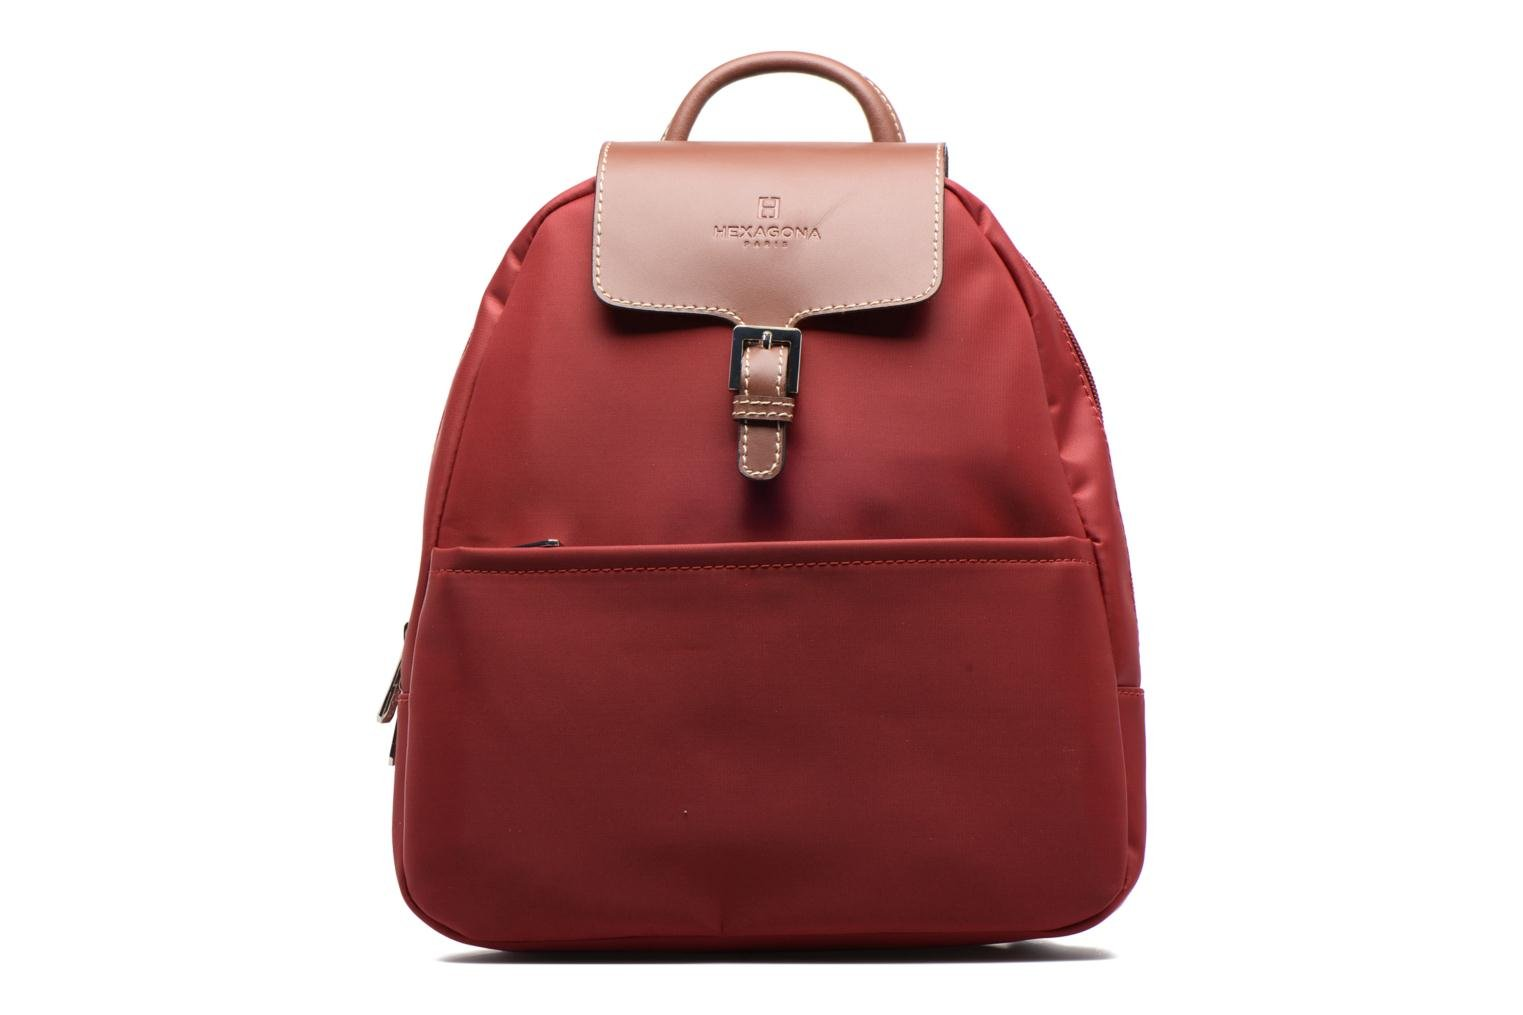 dos Rouge Sac Hexagona nylon à axAnFavwE